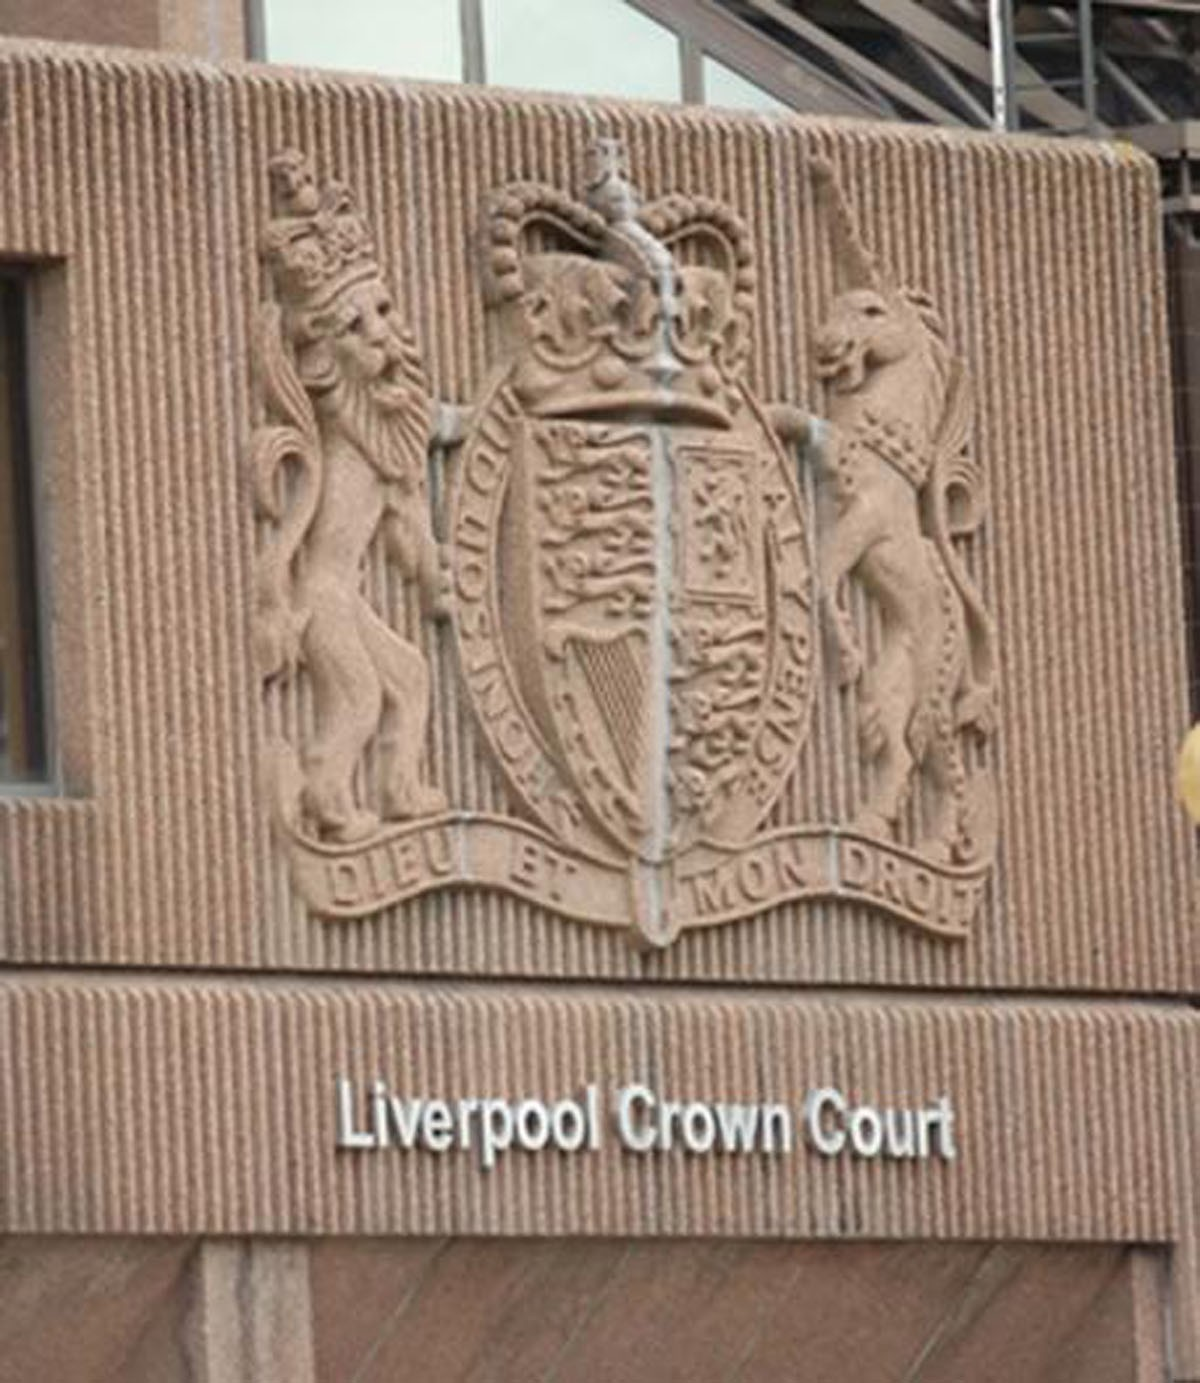 'Jealousy and obsession' were motives for murder, court is told